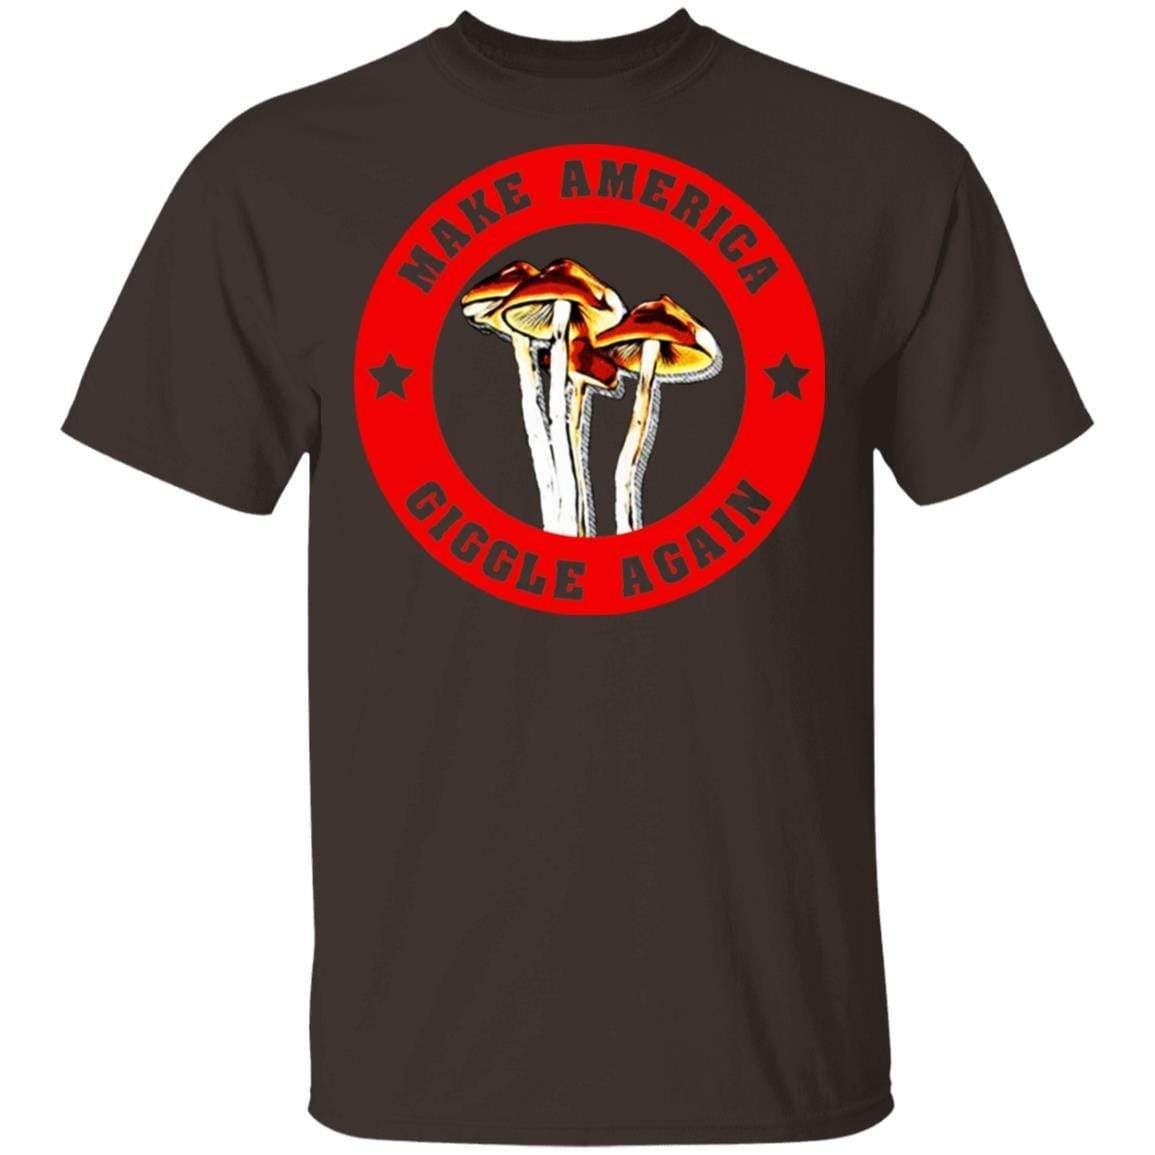 Make America Giggle Agian Mushrooms T-Shirts, Hoodies 1049-9956-87283559-48152 - Tee Ript